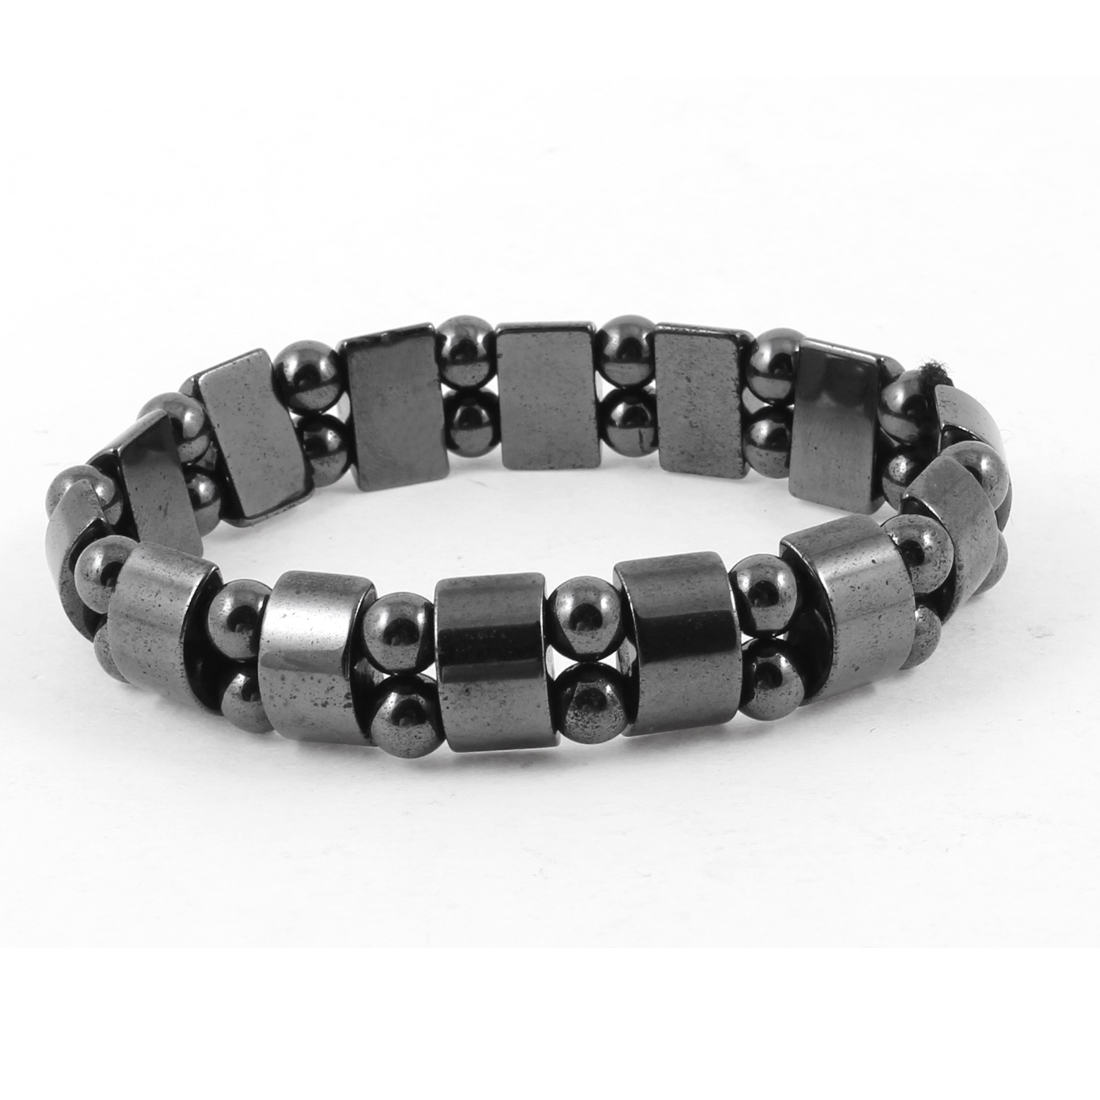 Unisex Dark Grey Rectangle Hematite Beads Elastic Magnetic Bracelet